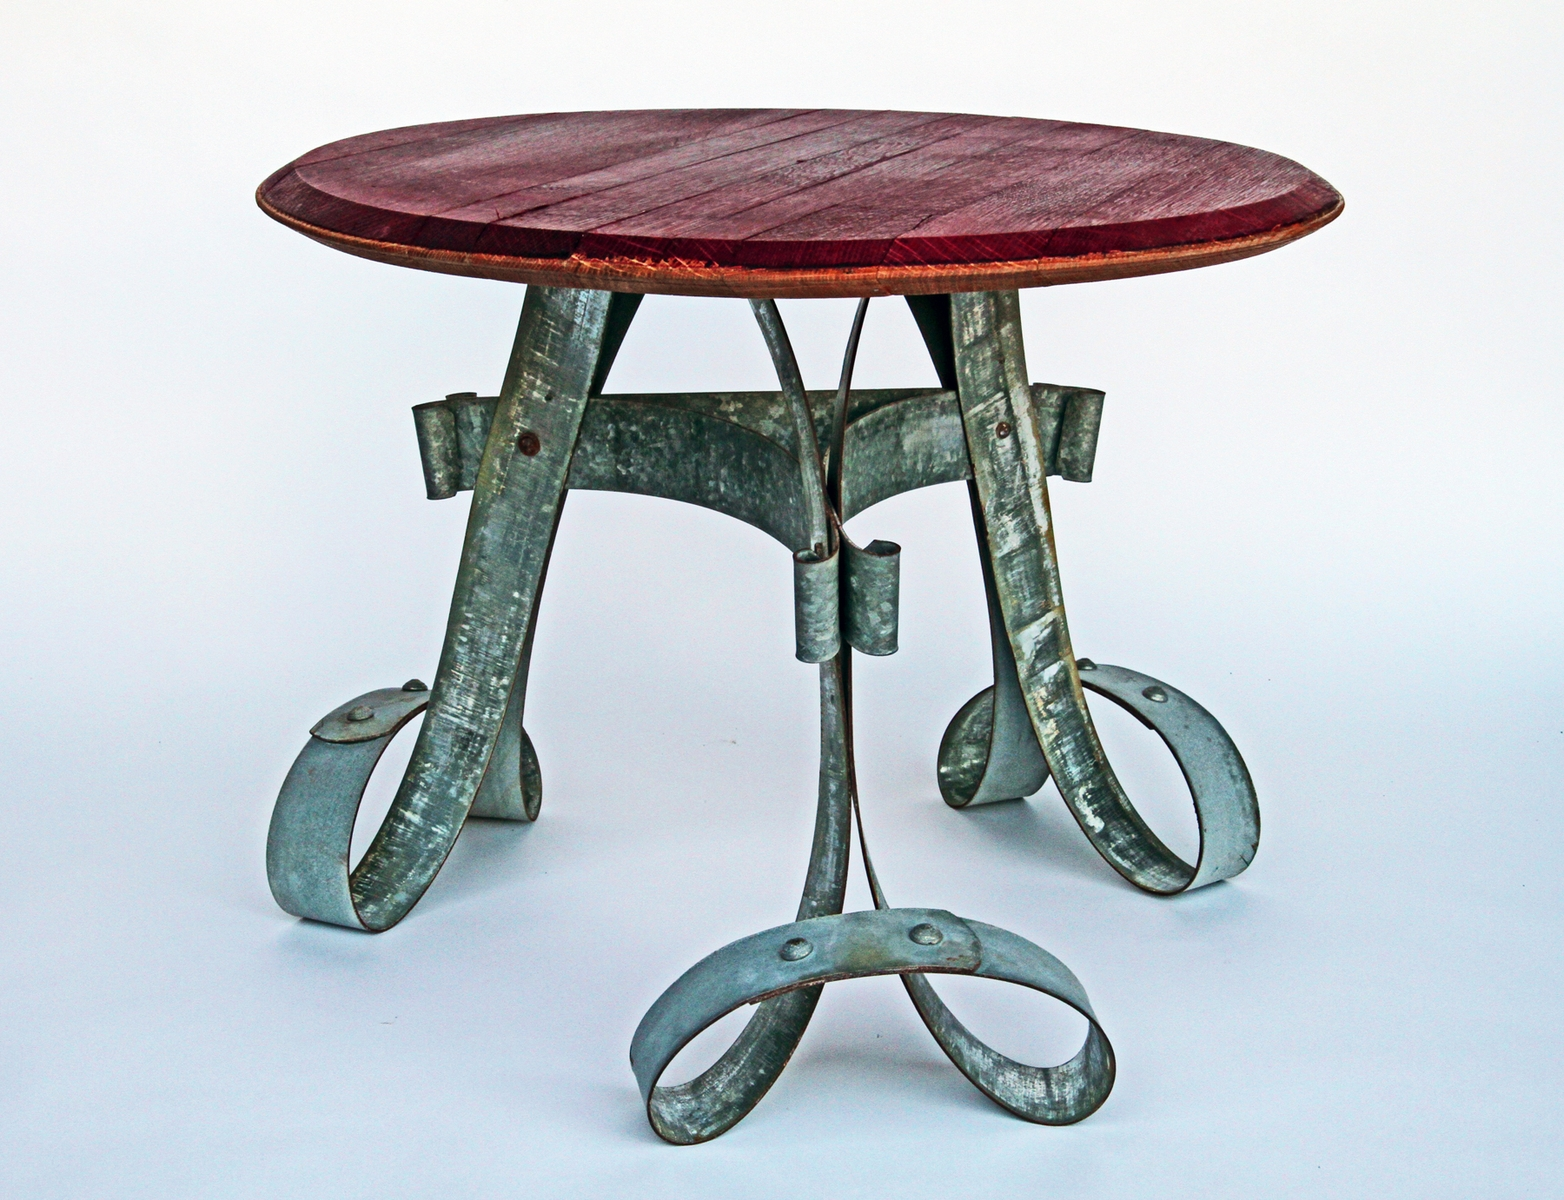 Barrel Banding End Table by Whit McLeod Furniture at CustomMade.com